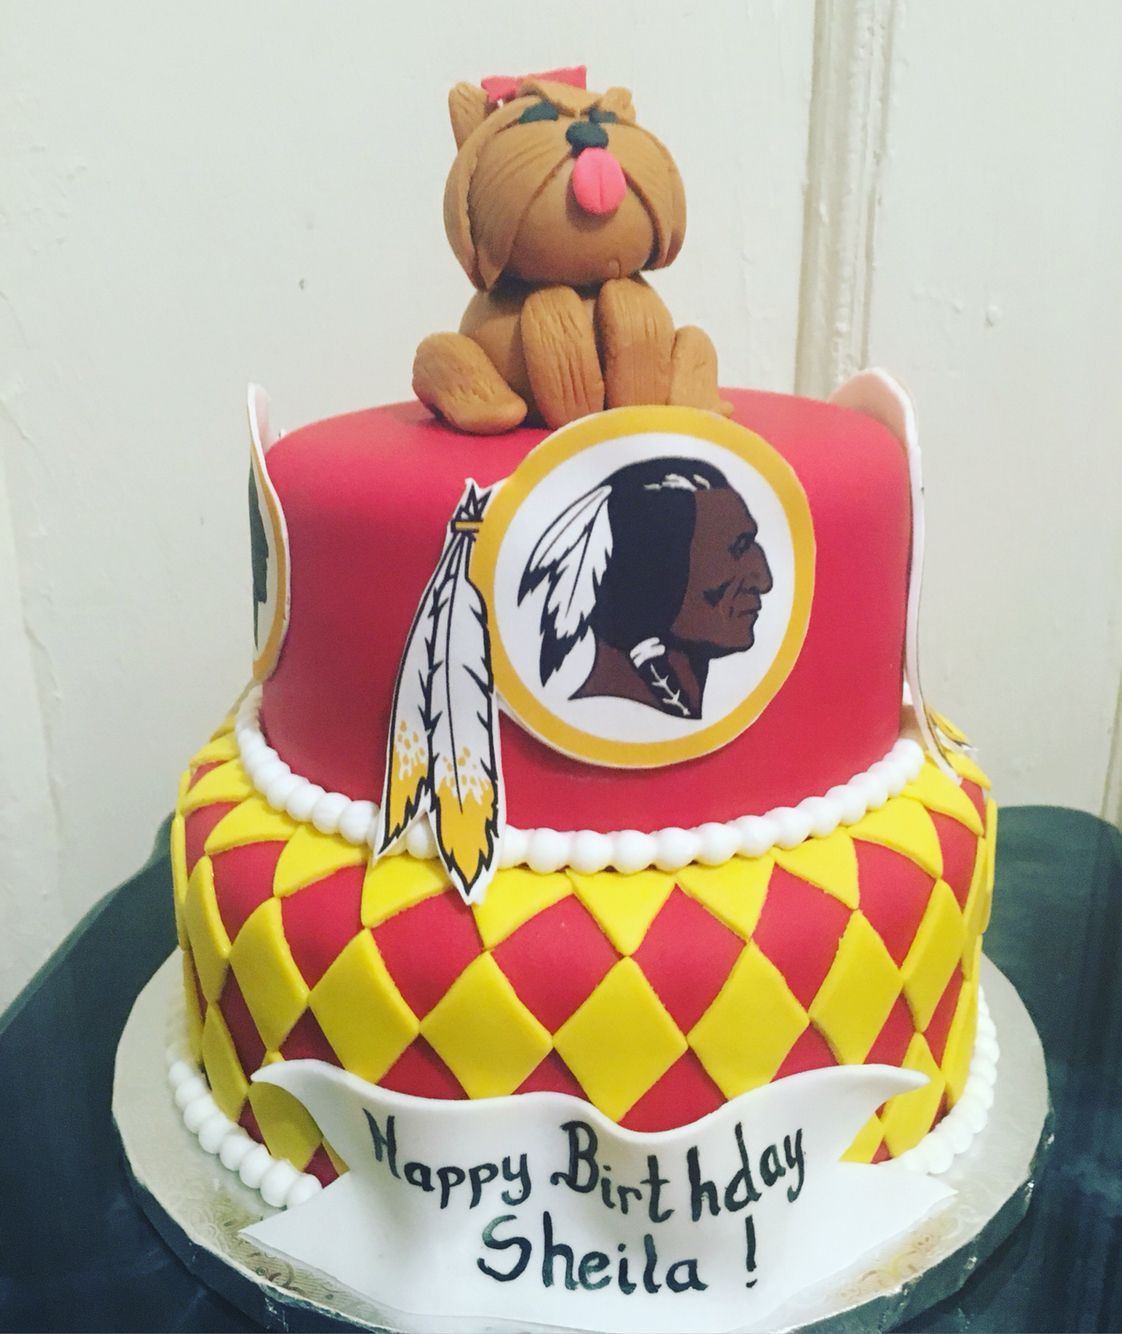 Red skins Indian cake with puppy cake topper!